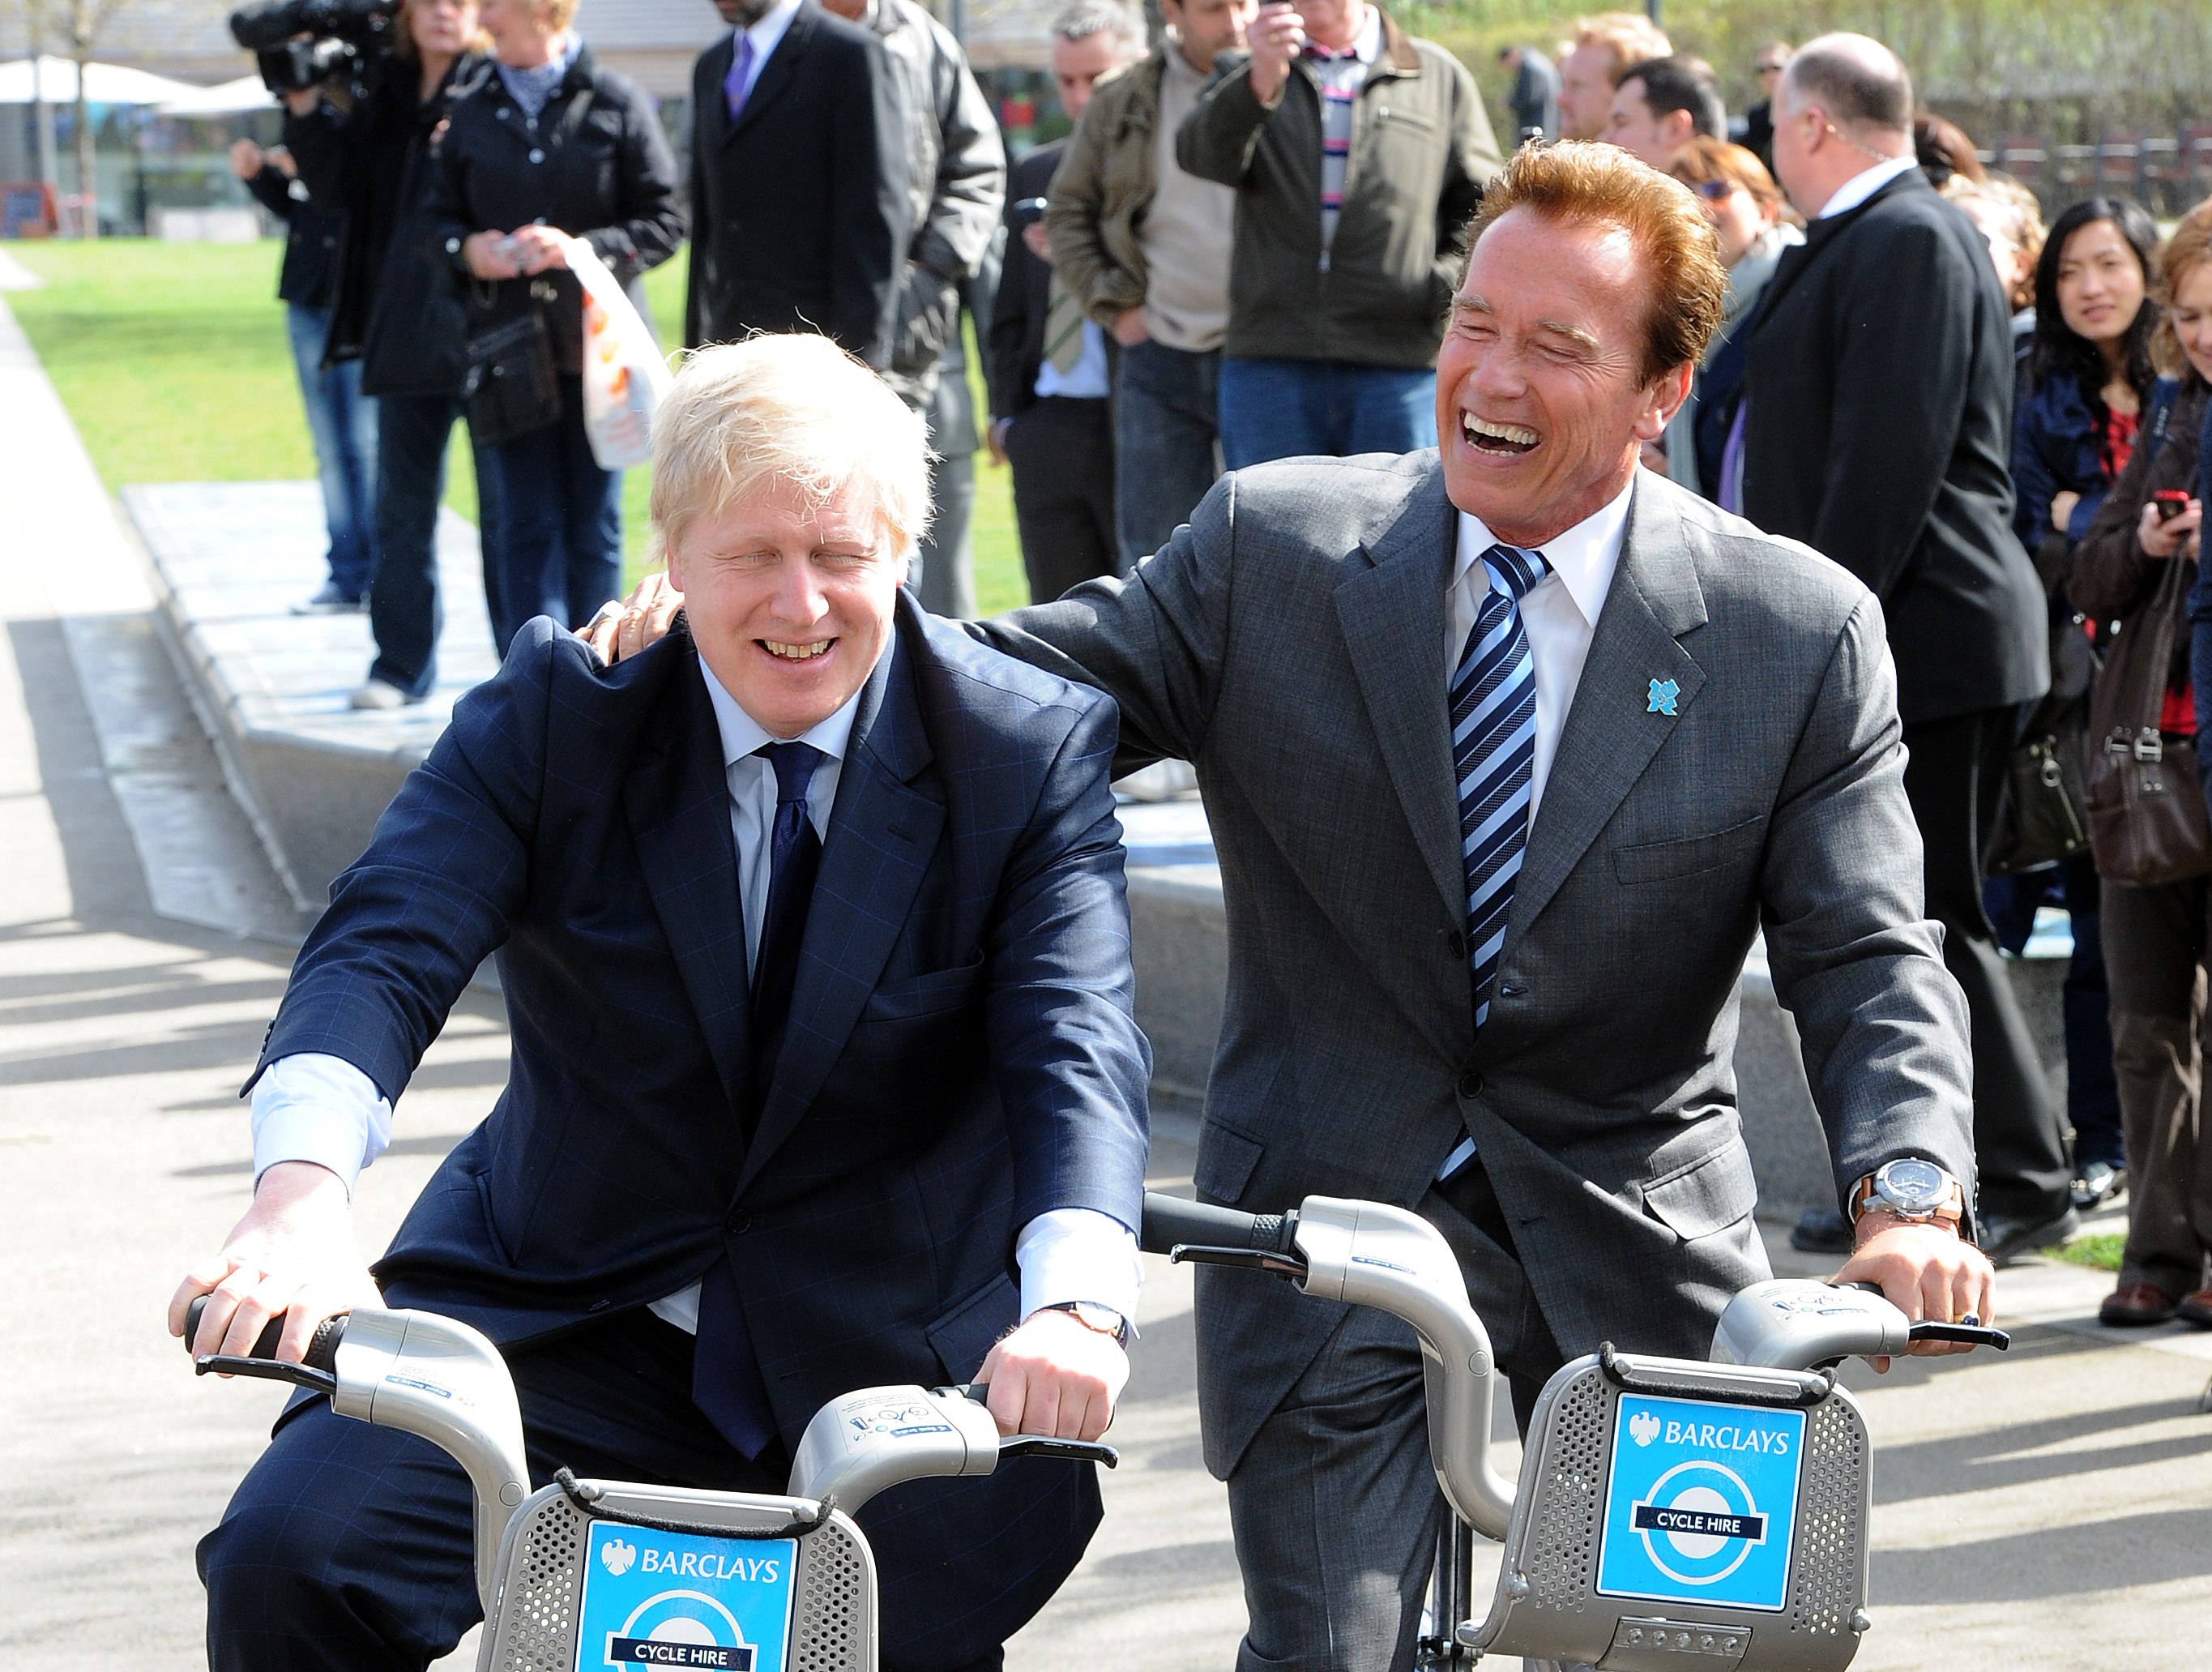 Mayor of London Boris Johnson and Arnold Schwarzenegger (right) on bikes outside City Hall, London.  PRESS ASSOCIATION Photo. Picture date: Thursday March 31, 2011. See PA story POLITICS Arnie. Photo credit should read: Anthony Devlin/PA Wire